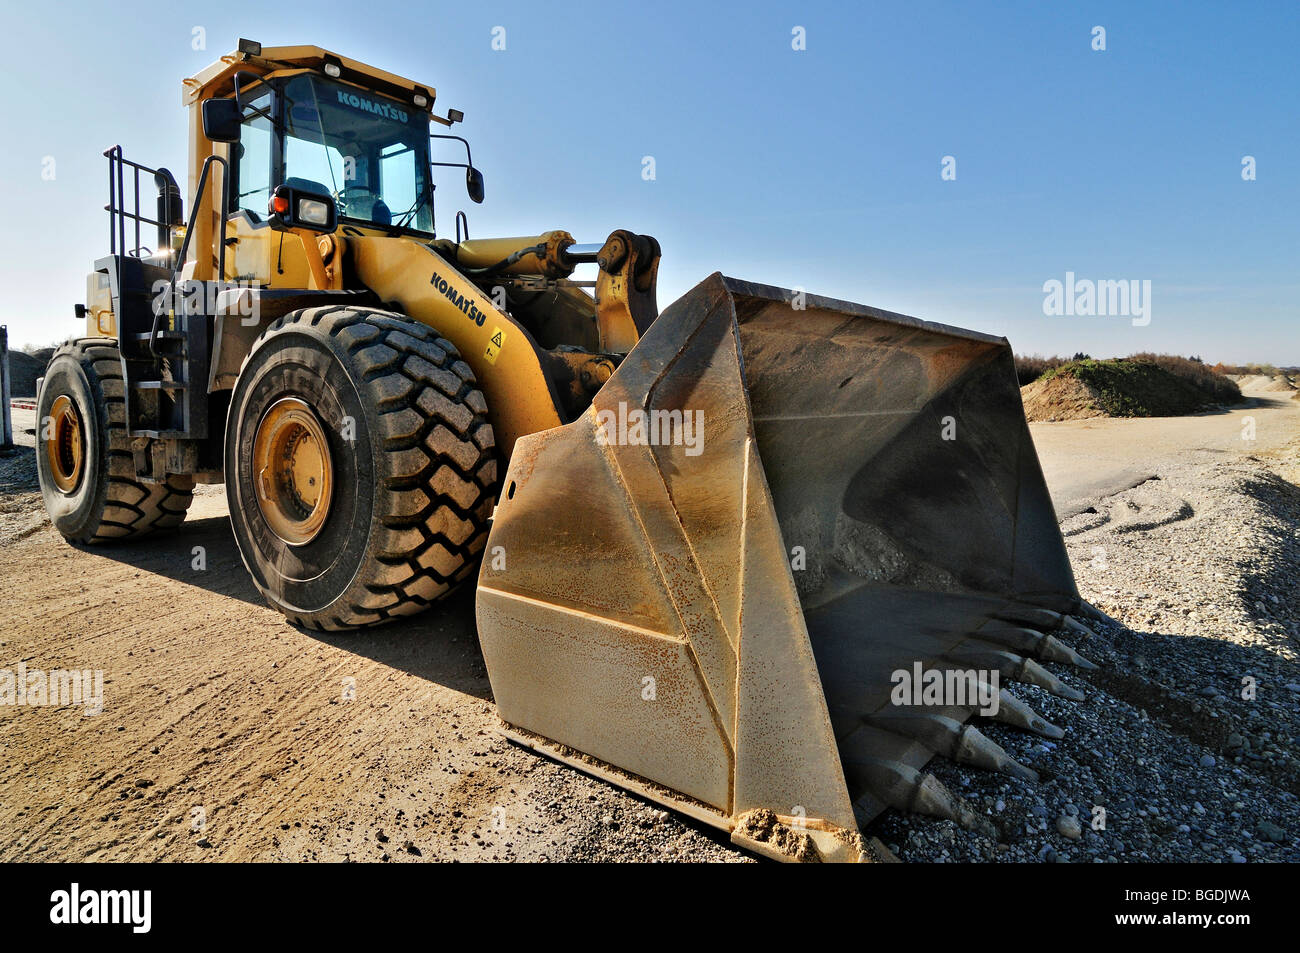 Front loader, Germany, Europe - Stock Image